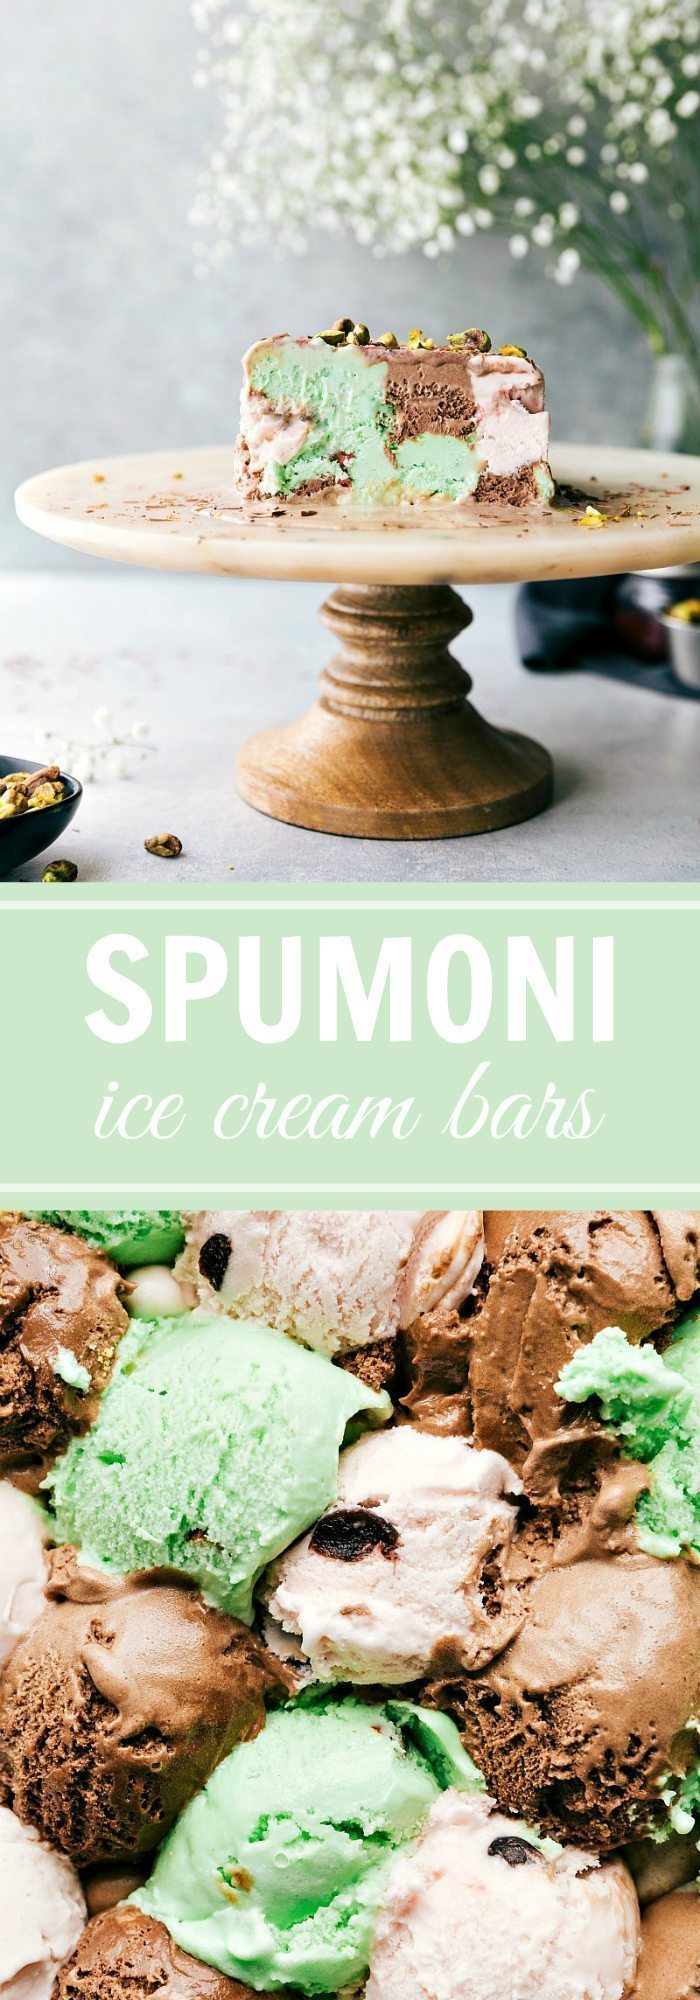 SPUMONI ICE CREAM TERRINE! Layer 3 flavors of ice cream in a bread pan and you get this amazing dessert! Plus an easy tart cherry sauce! via chelseasmessyapron.com